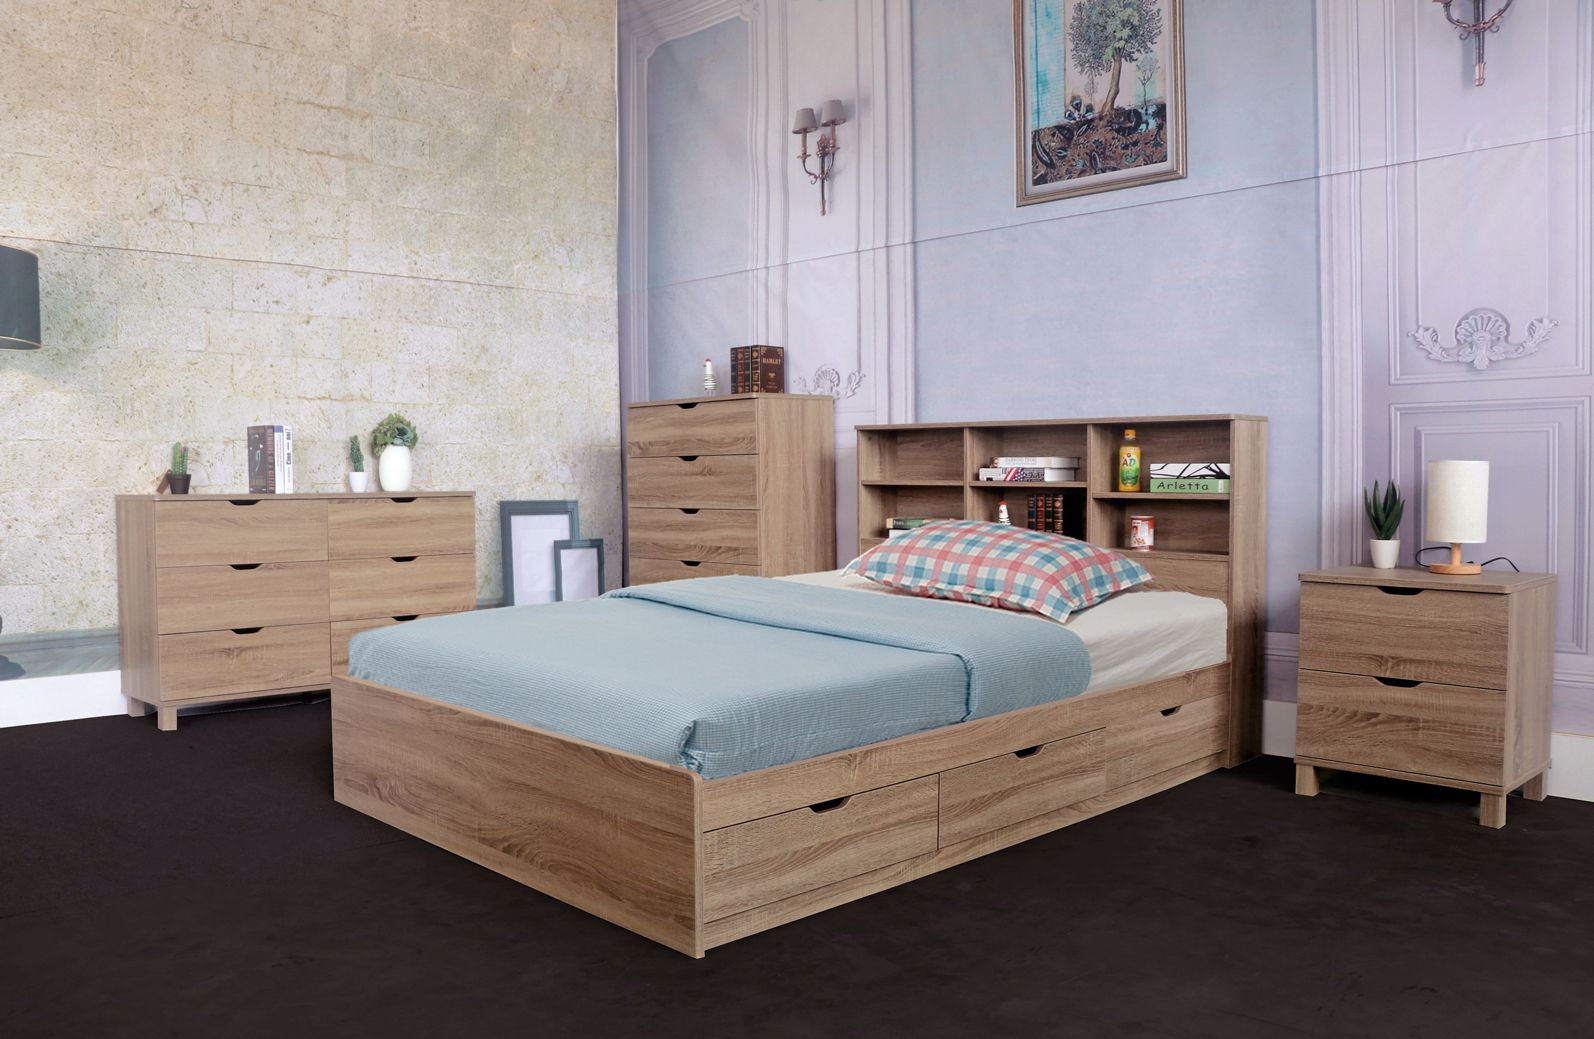 Id Usa Furniture Distributor Y1402f Full Size Chest Bed Features 3 Drawers On Metal Glides Y1401f Best Bed Designs Unique Bed Design Bedroom Furniture Beds